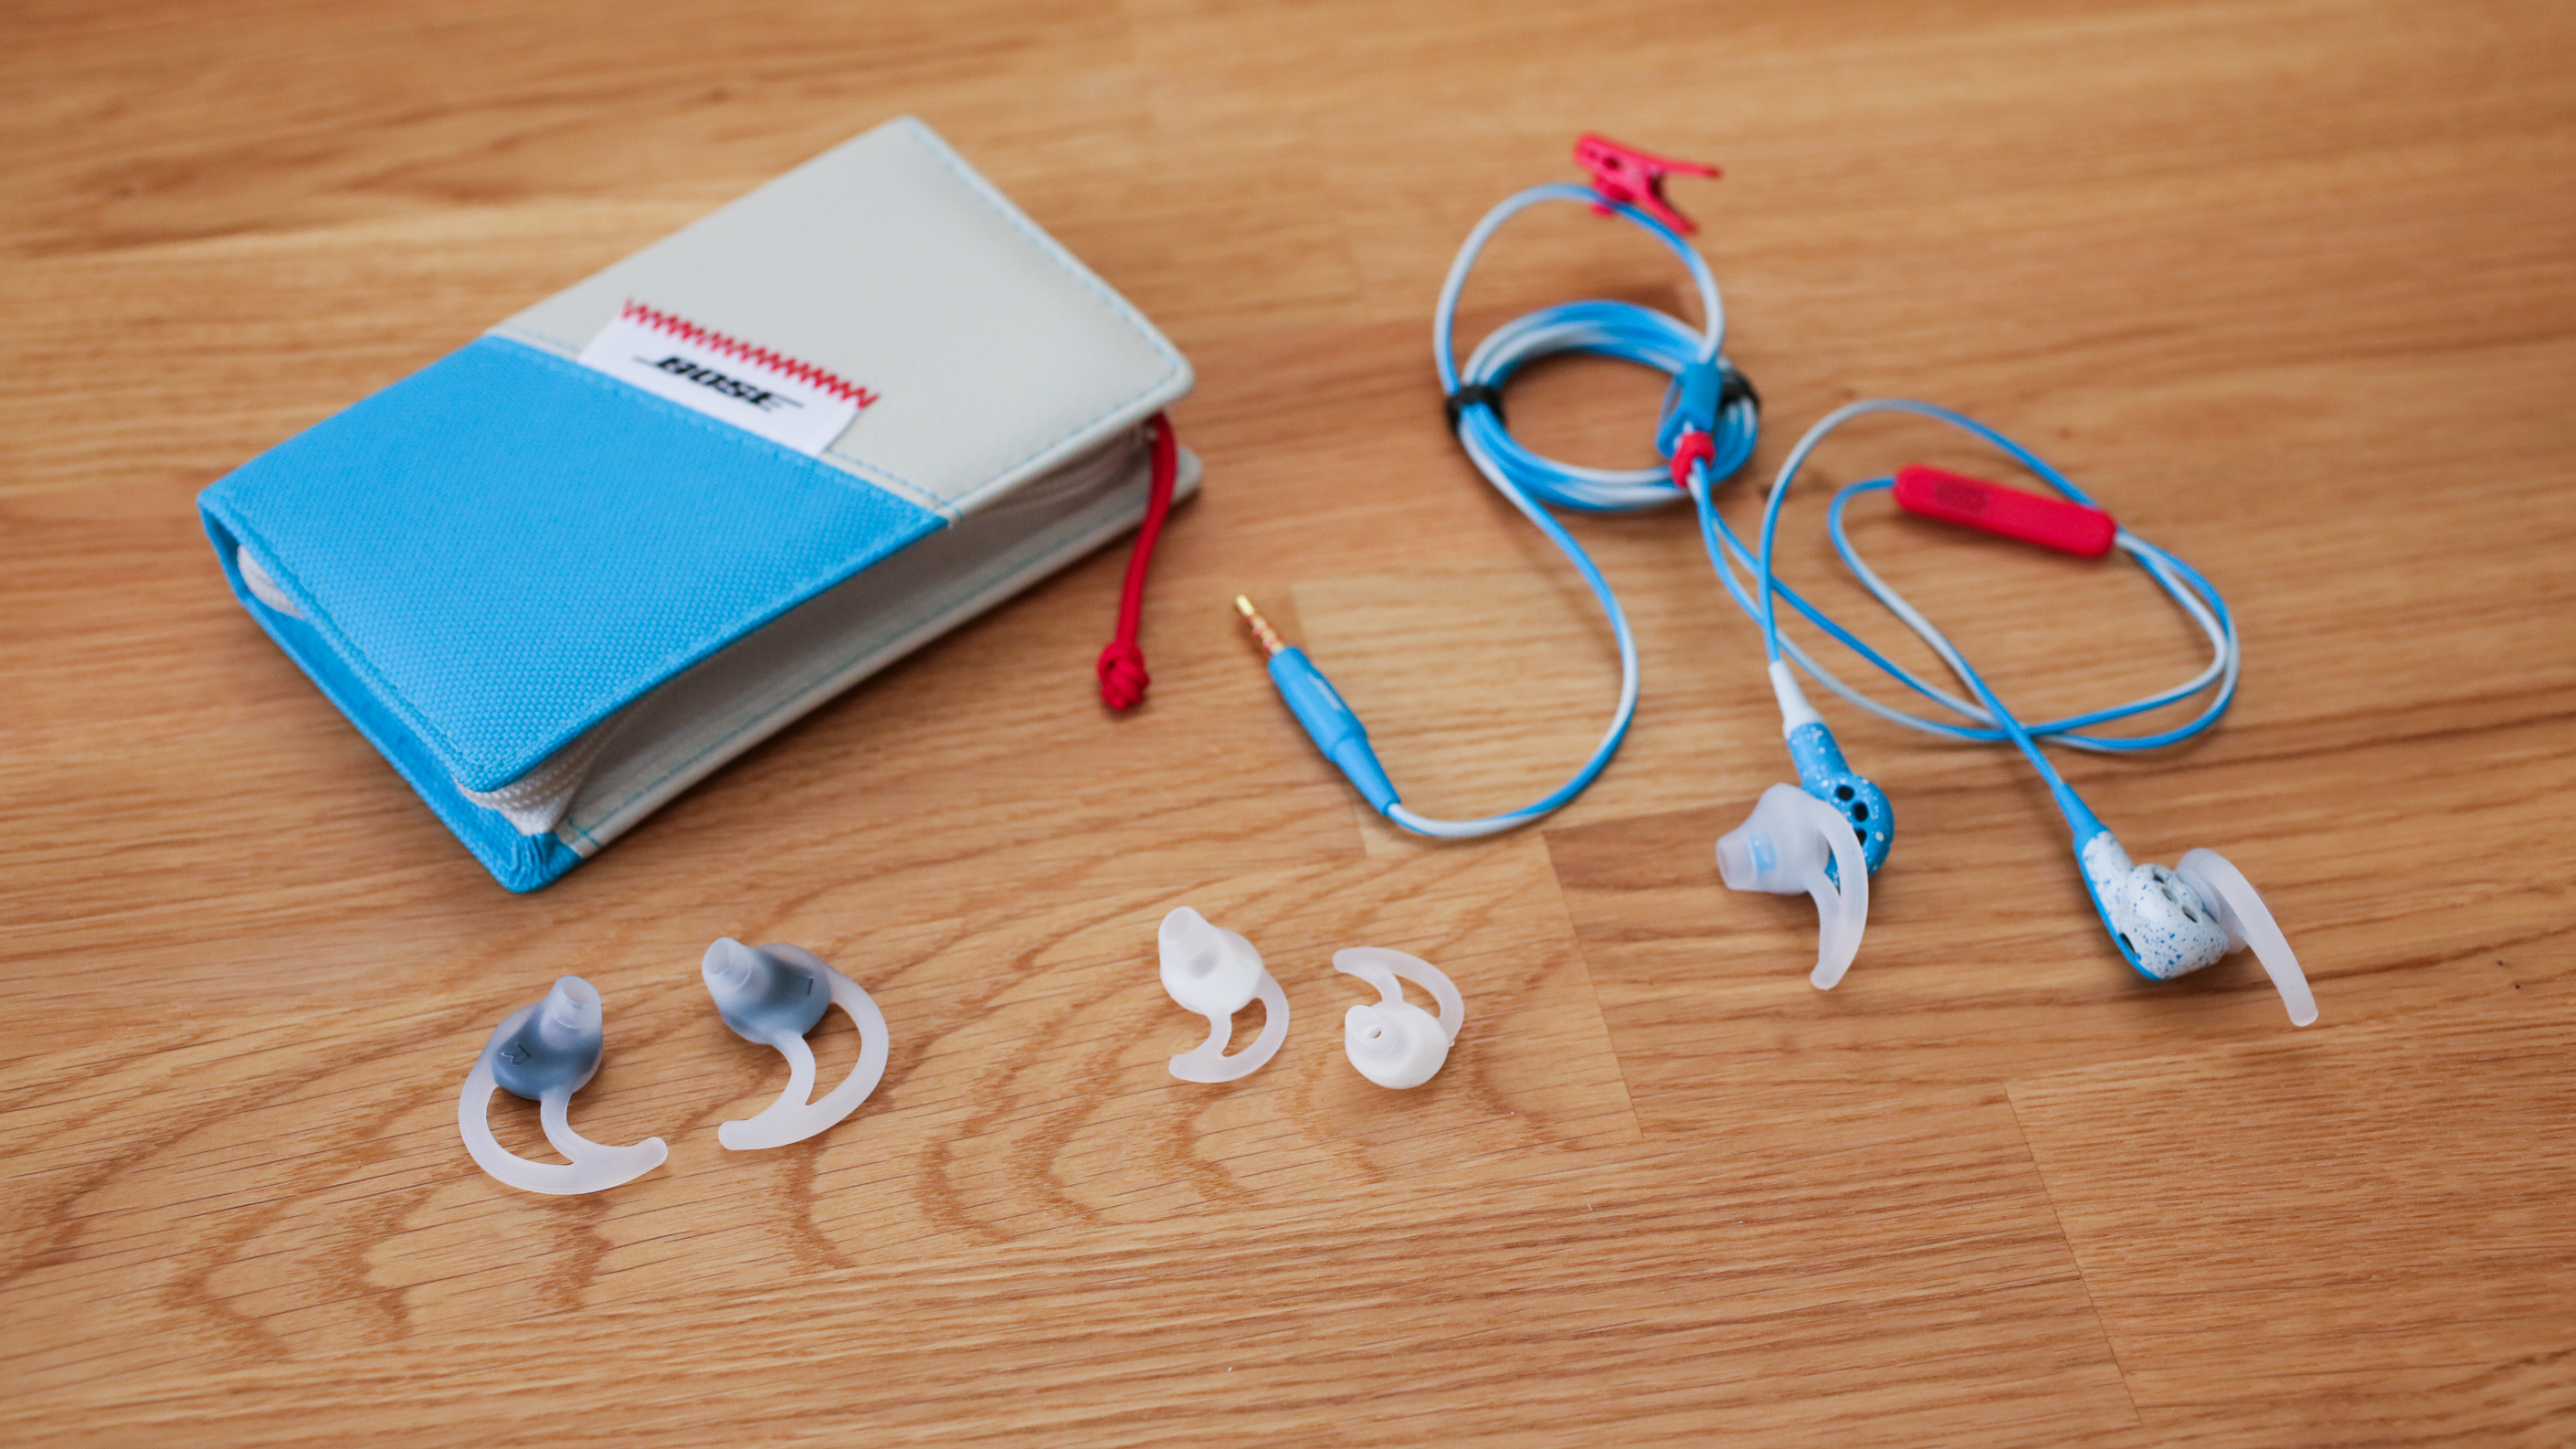 02bose-freestyle-earbuds-product-photos.jpg